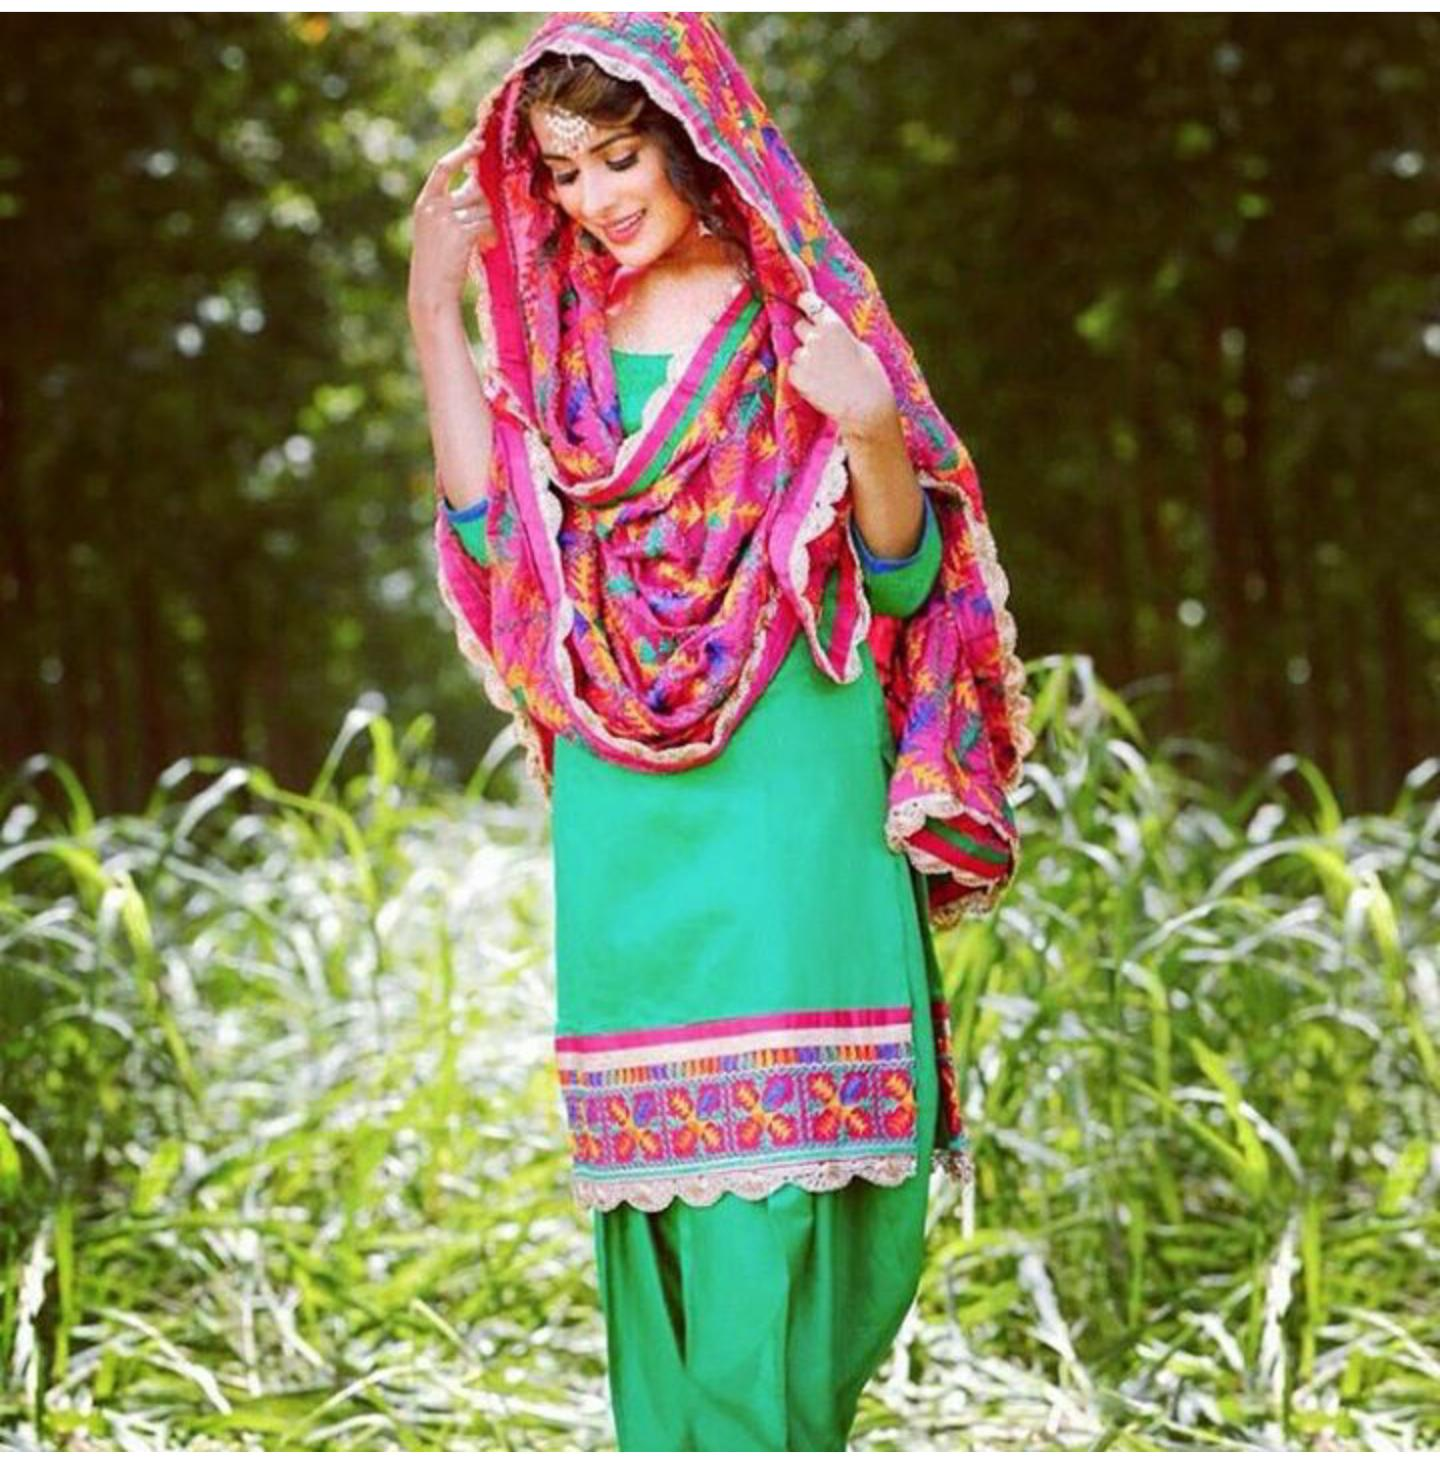 Latest Stylish Punjabi Girls Dress And Punjabi Beauty In -3793